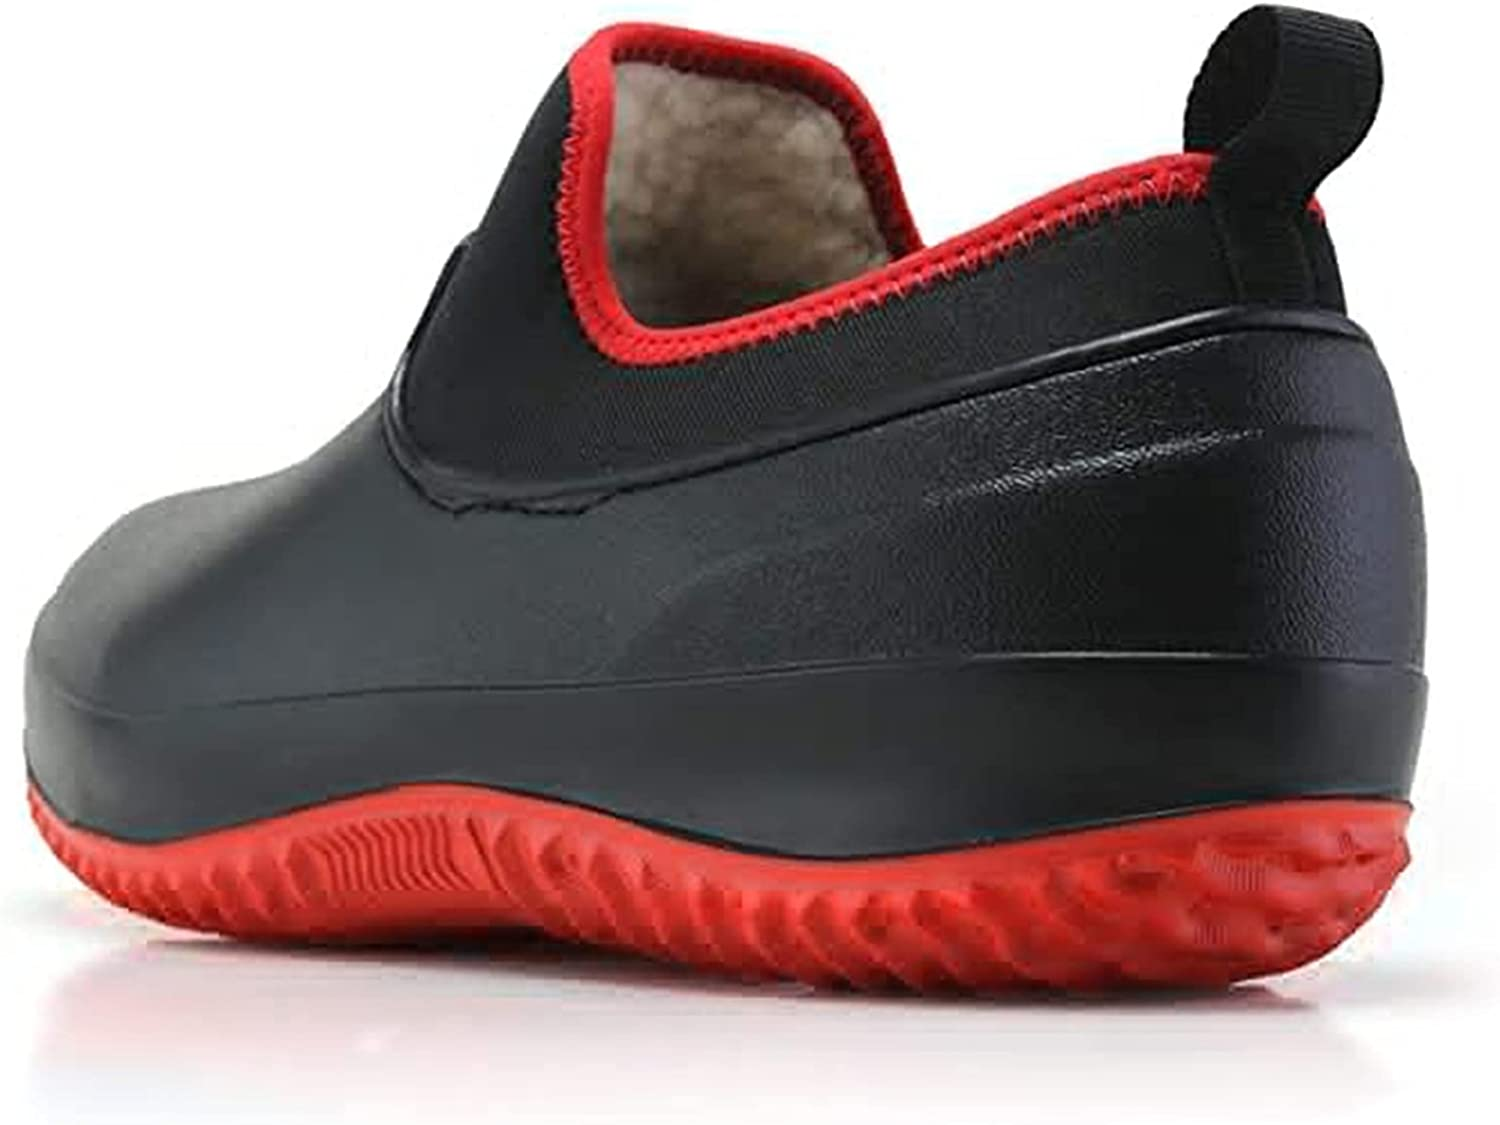 MTDBAOD Non-Slip Chef Shoes, Winter Fur Lined Warm Shoes,Men Women Waterproof Work Clogs Oil Resistant Safety Chef Shoes Garden Shoes (42,Black)